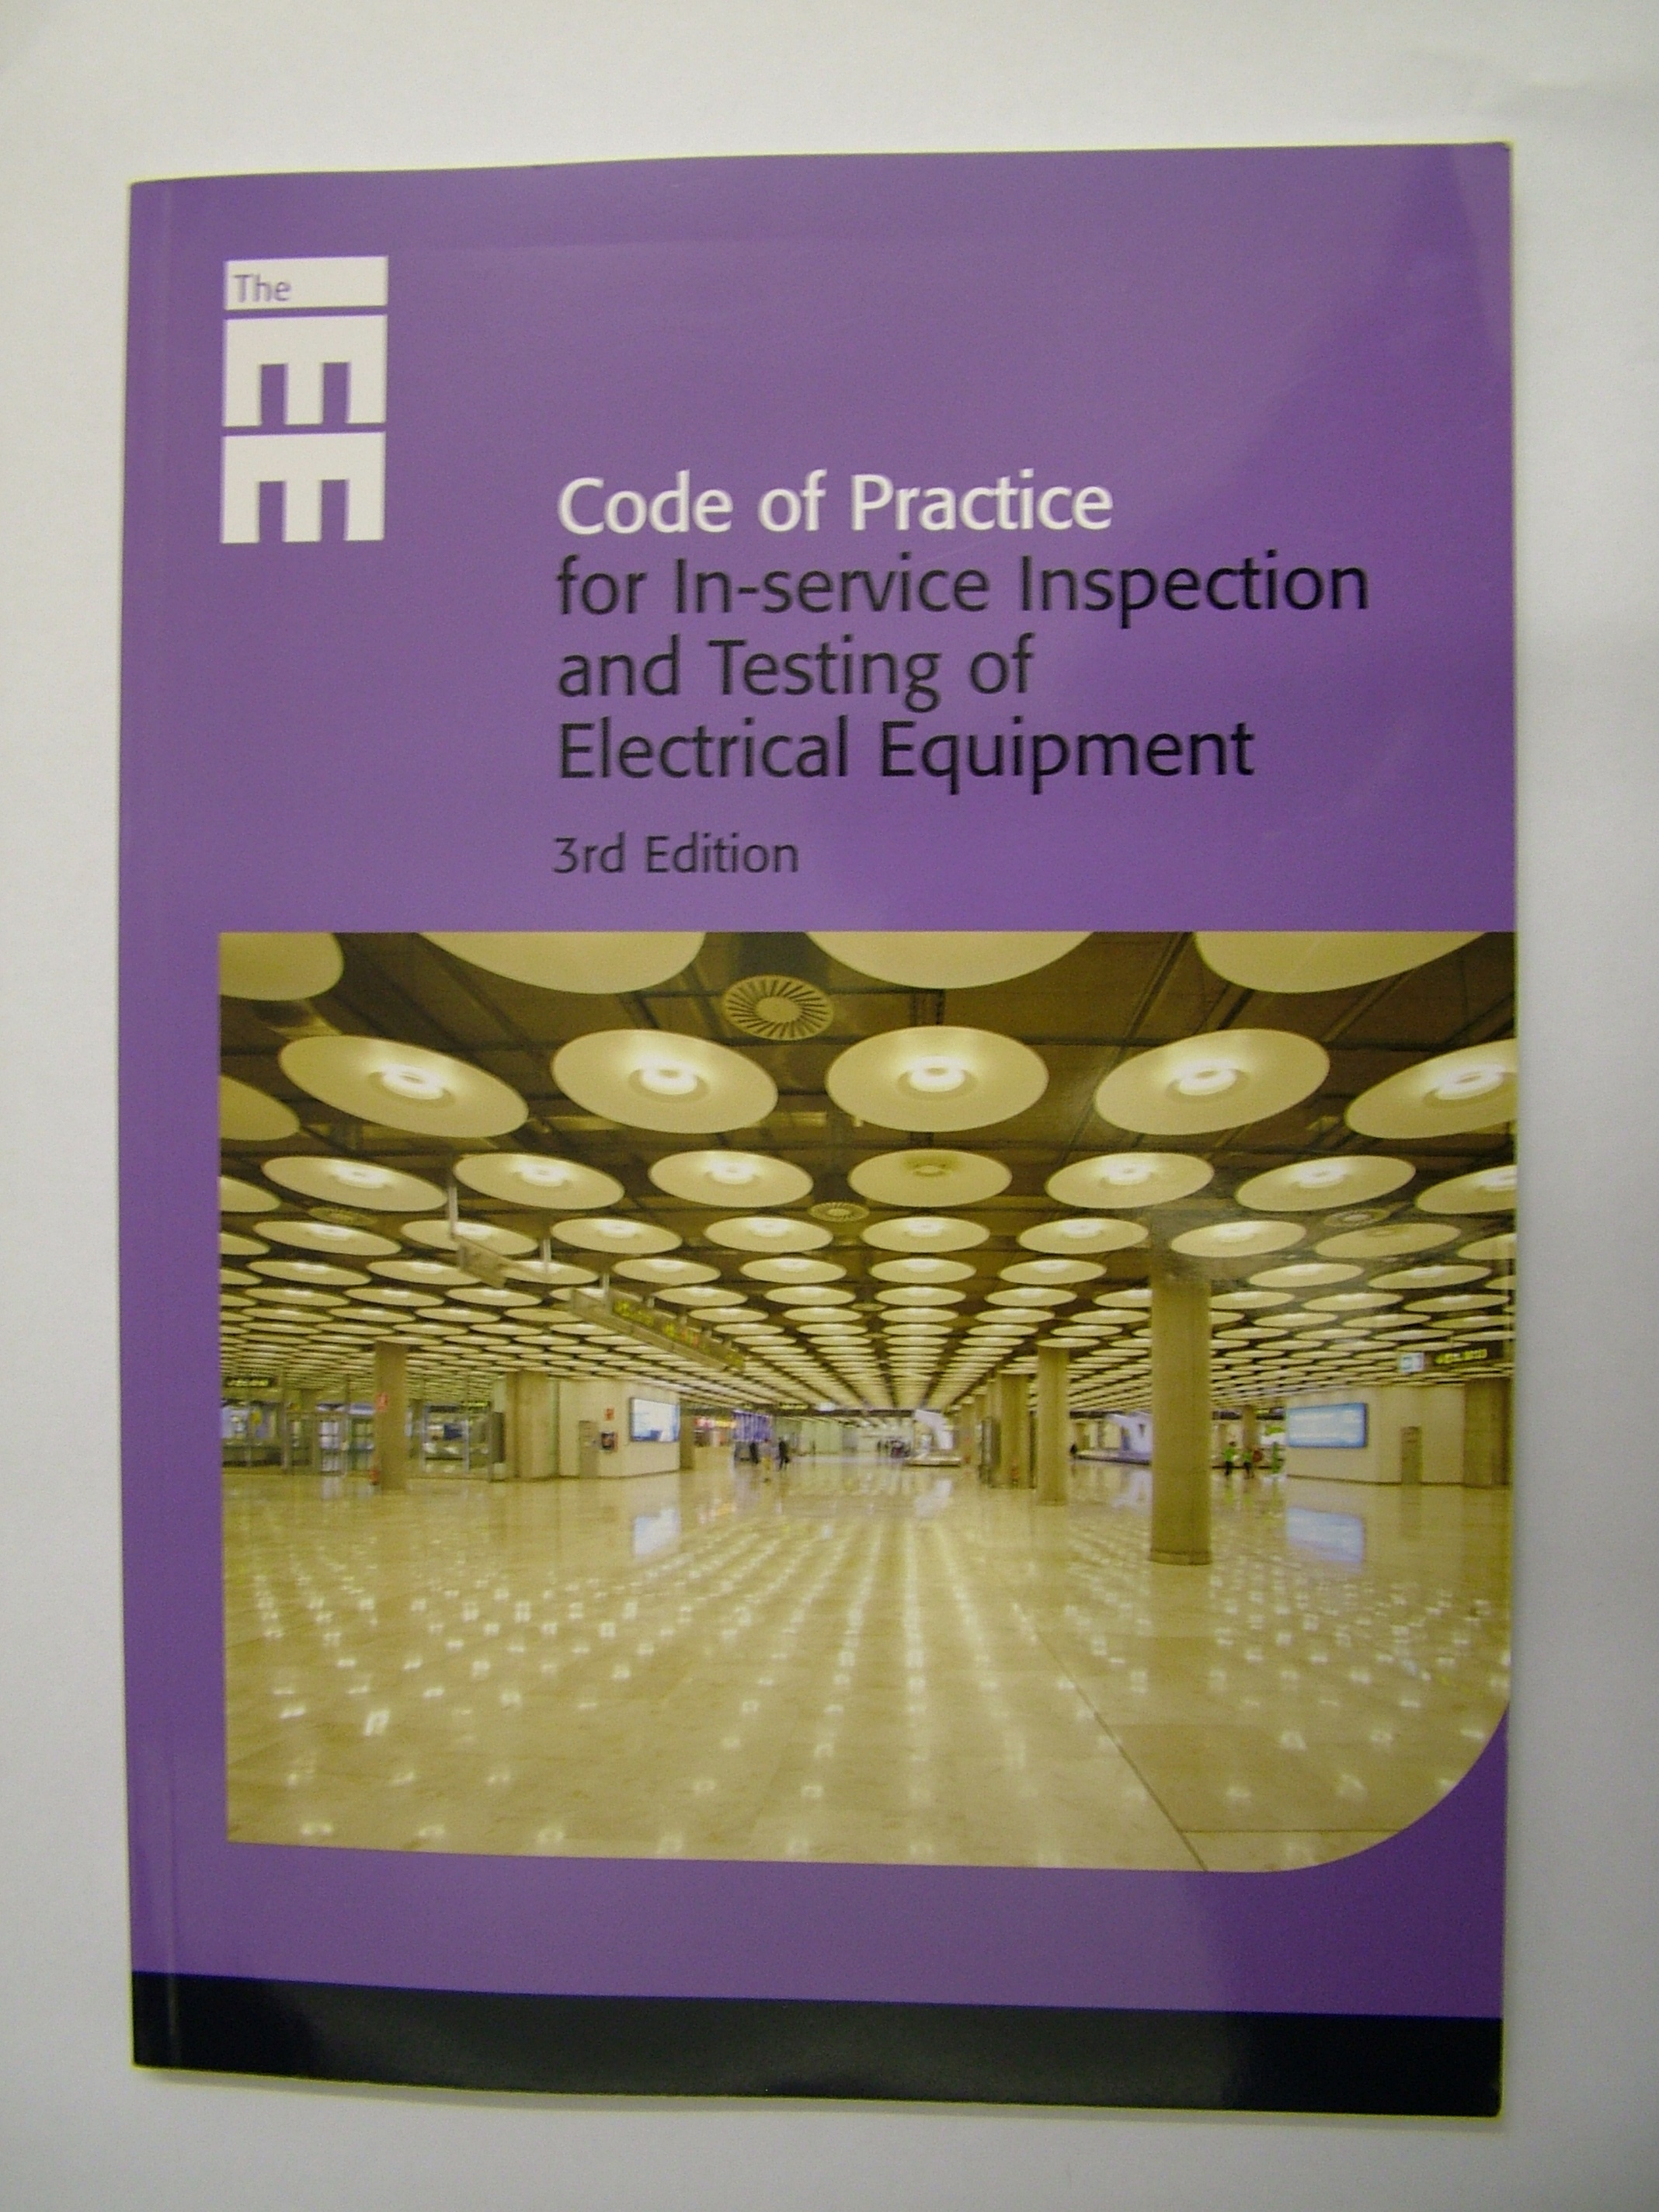 Pat Testing Courses Training 2377 The Builder 17 Edition Wiring Regulations Book Iee Code Of Practice For In Service Inspection And Electrical Equipment 3rd Isbn 978 0 86341 833 4